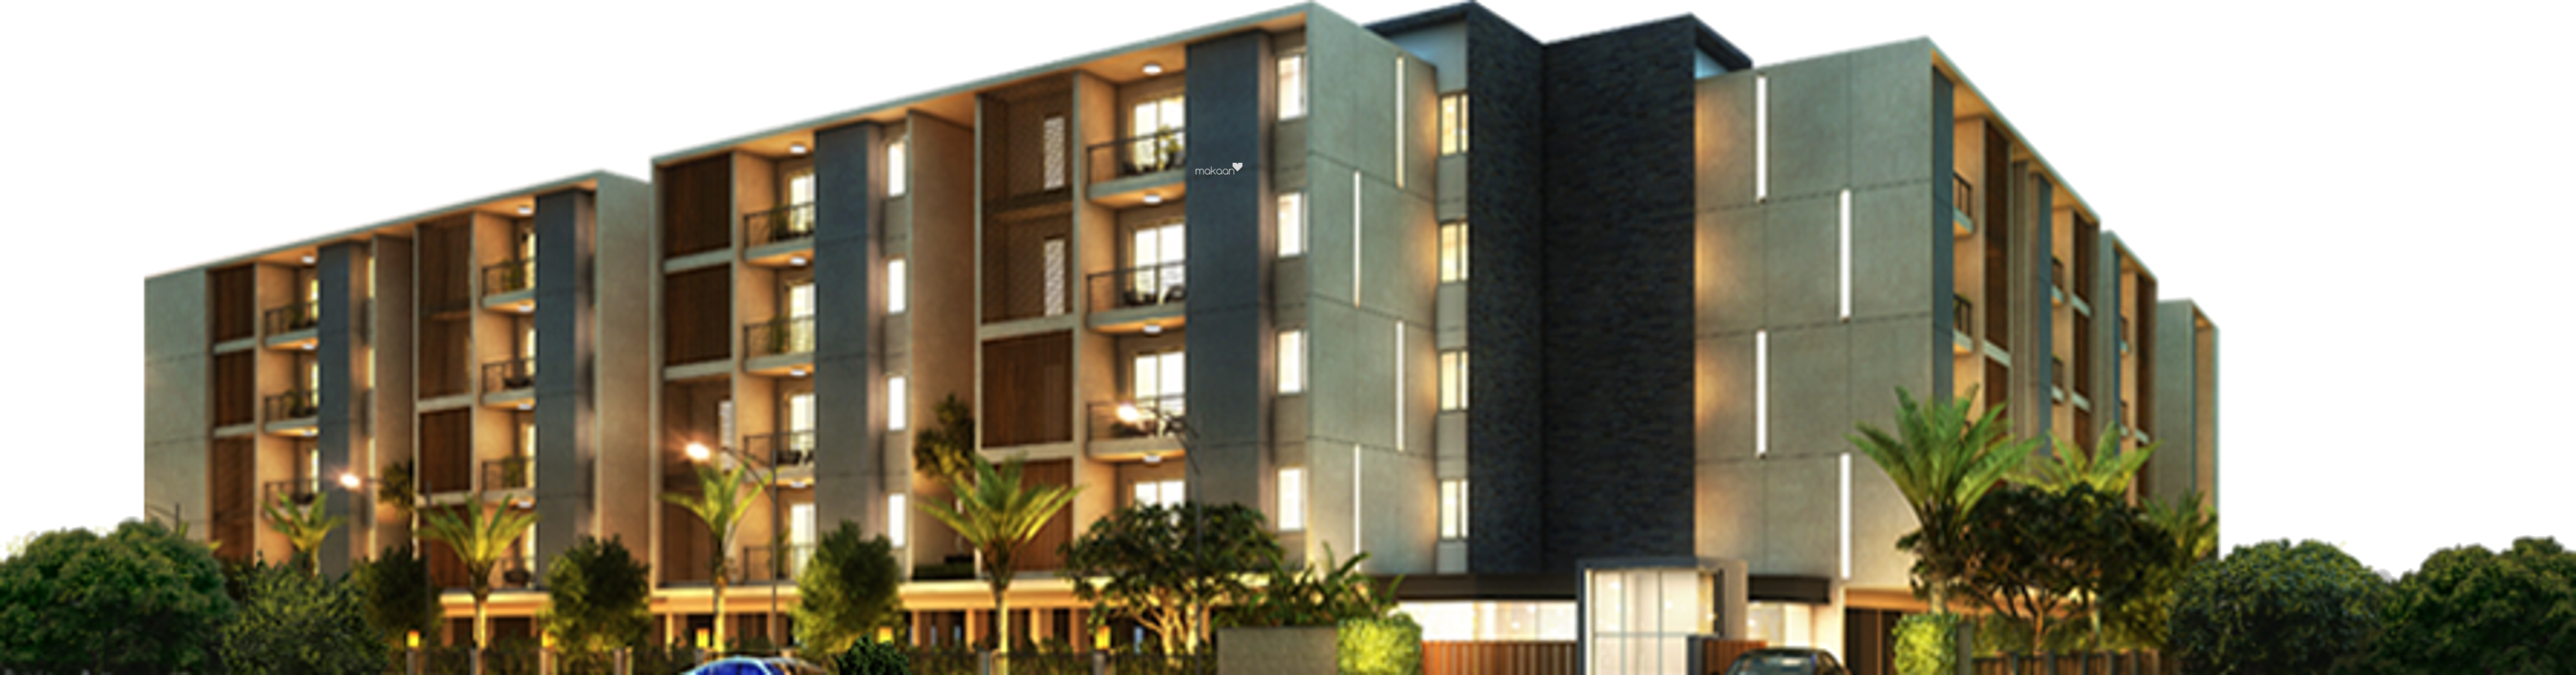 2283 sq ft 4BHK 4BHK+4T (2,283 sq ft)   Pooja Room Property By Mercury Housing and Properties In Viha, Anna Nagar